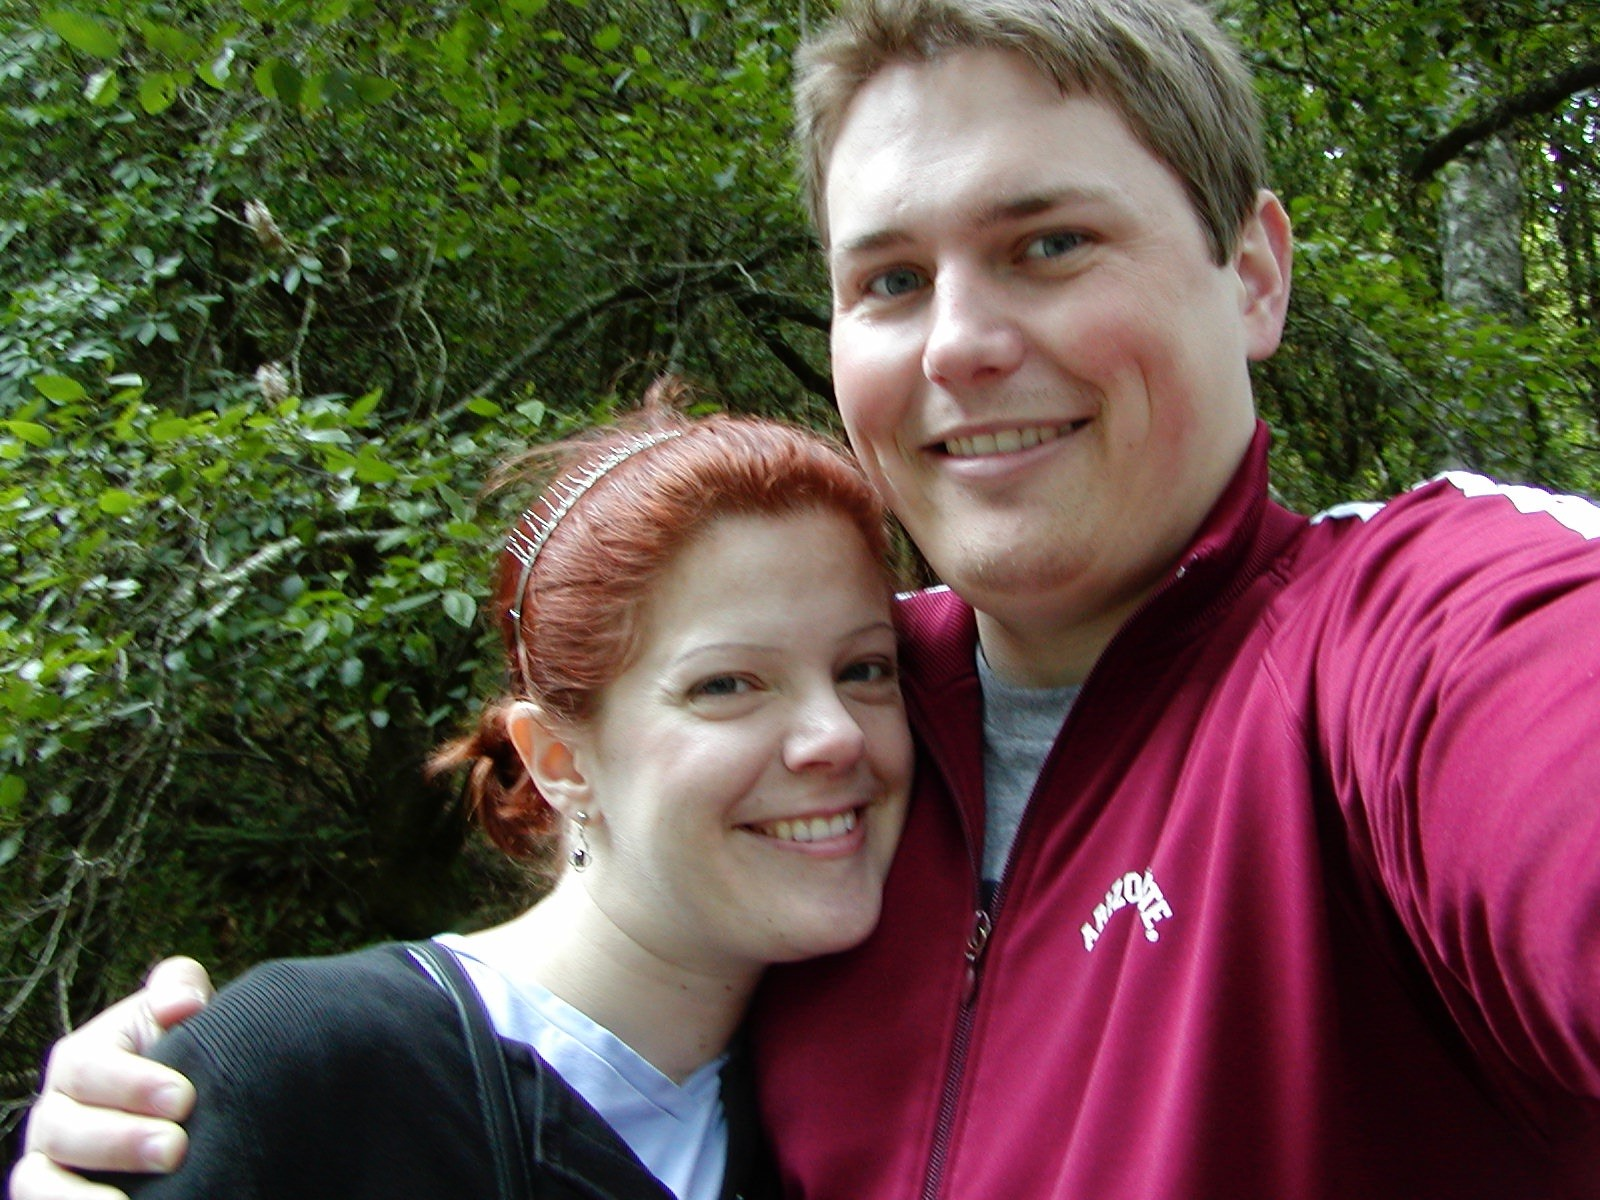 Melissa and I on our honeymoon at the Japanese Tea Garden in San Francisco, June, 2005.